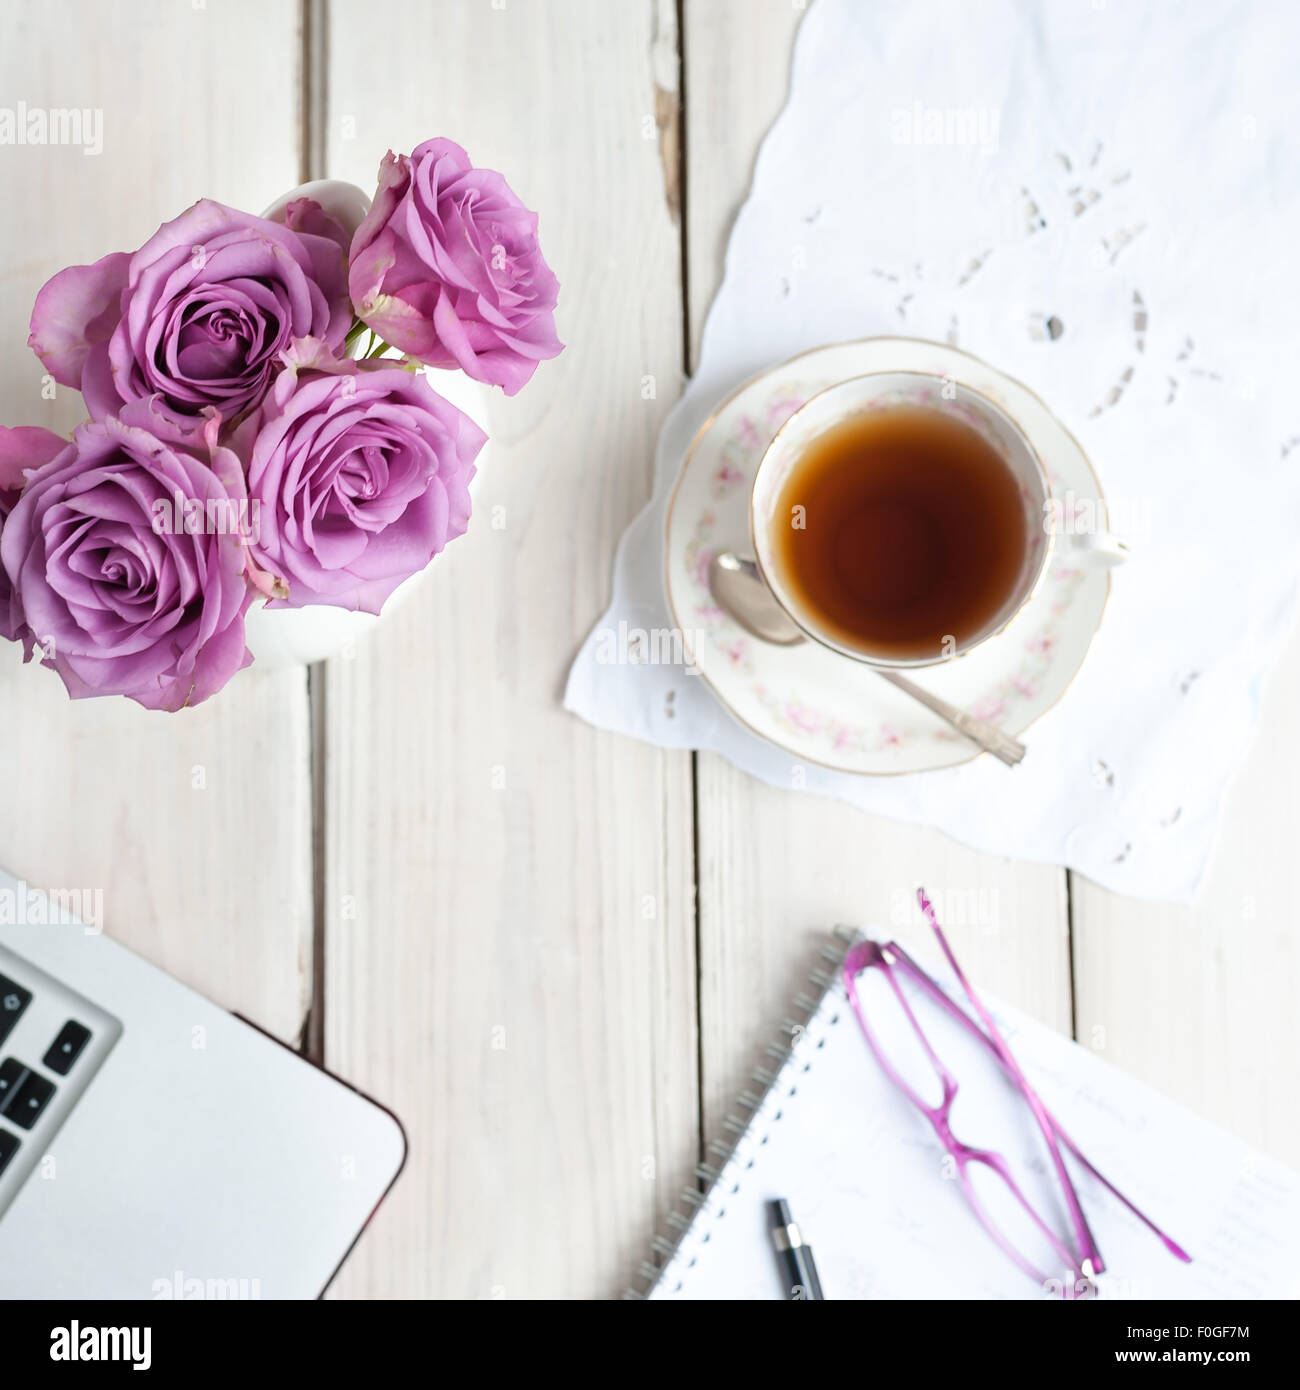 working at home tea break with roses laptop notebook glasses - Stock Image